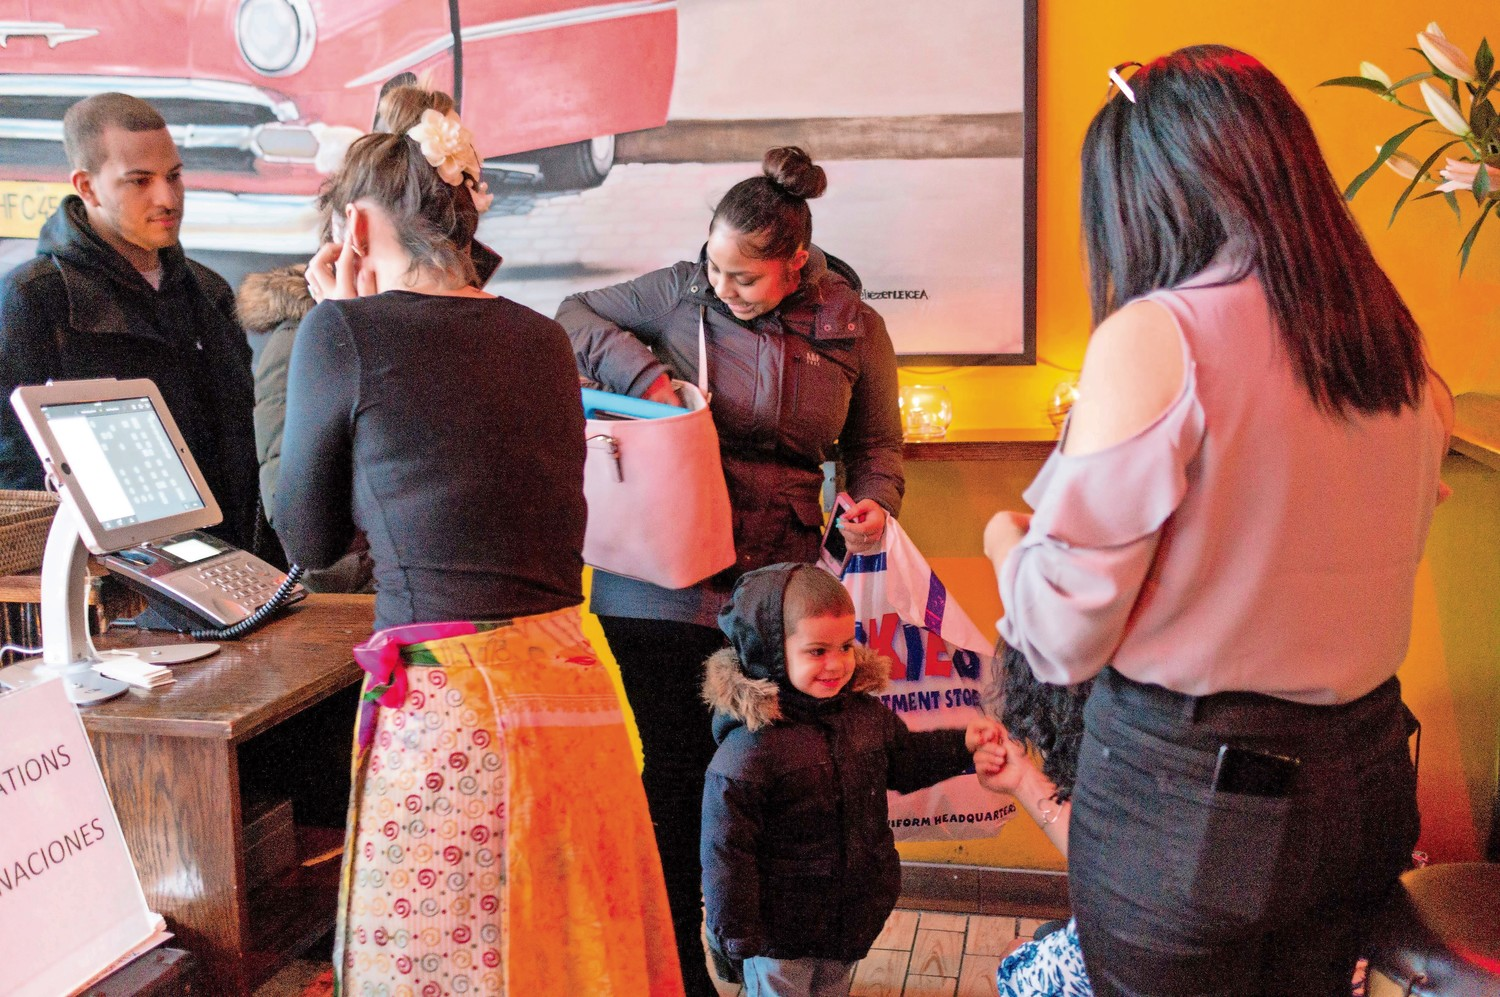 Lehman College student Christina Torres, center, arrives with her son Nathan Martinez at Amor Cubano, a Cuban restaurant in Harlem. Torres will be part of a weeklong trip to Cuba as part of her course work in Teresita Levy's class.